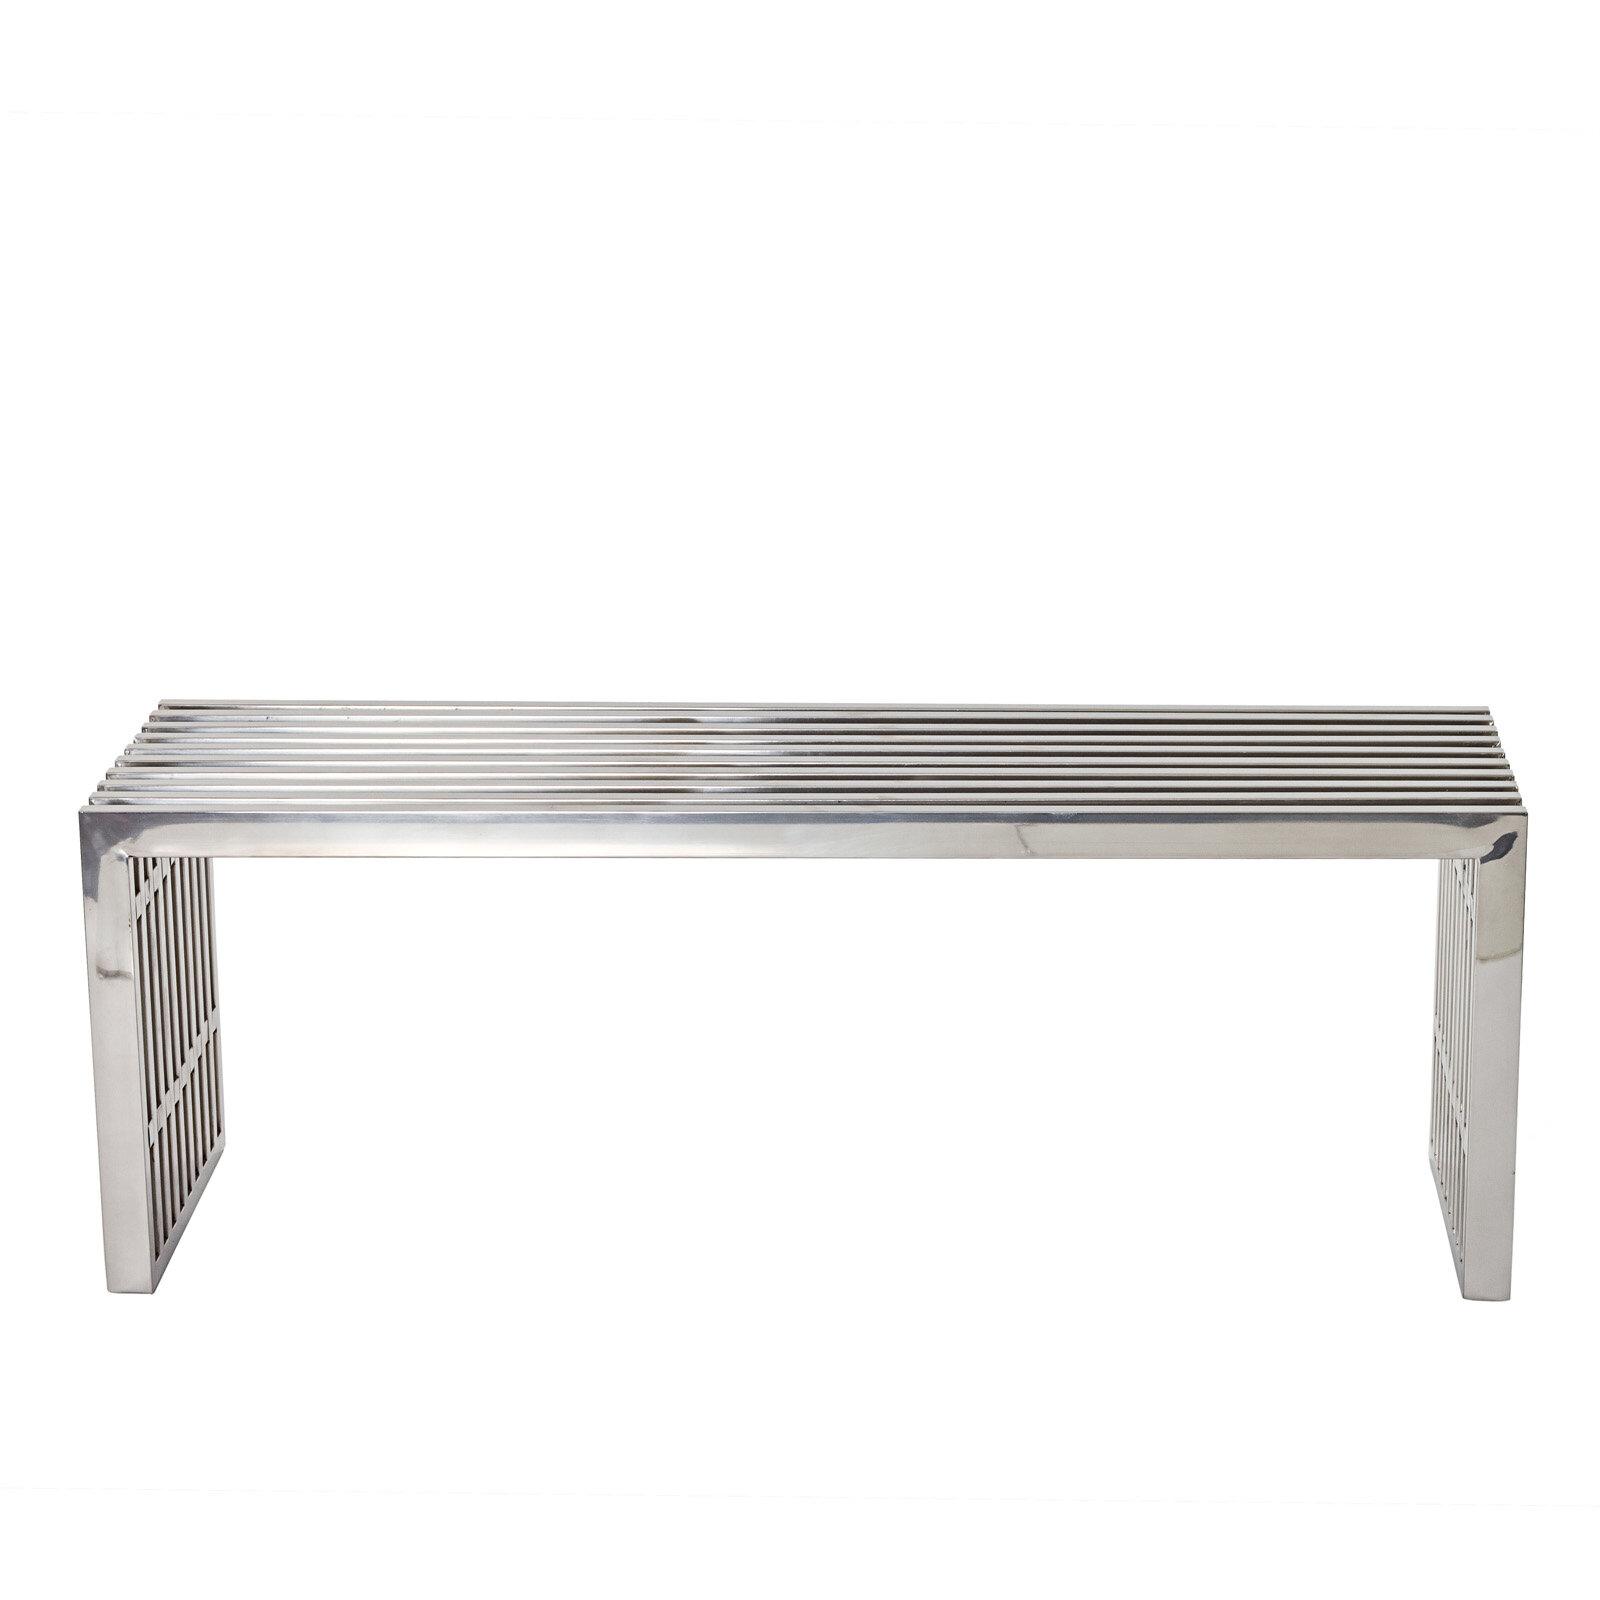 airport seating buy five stock public office seater steel min bench stainless